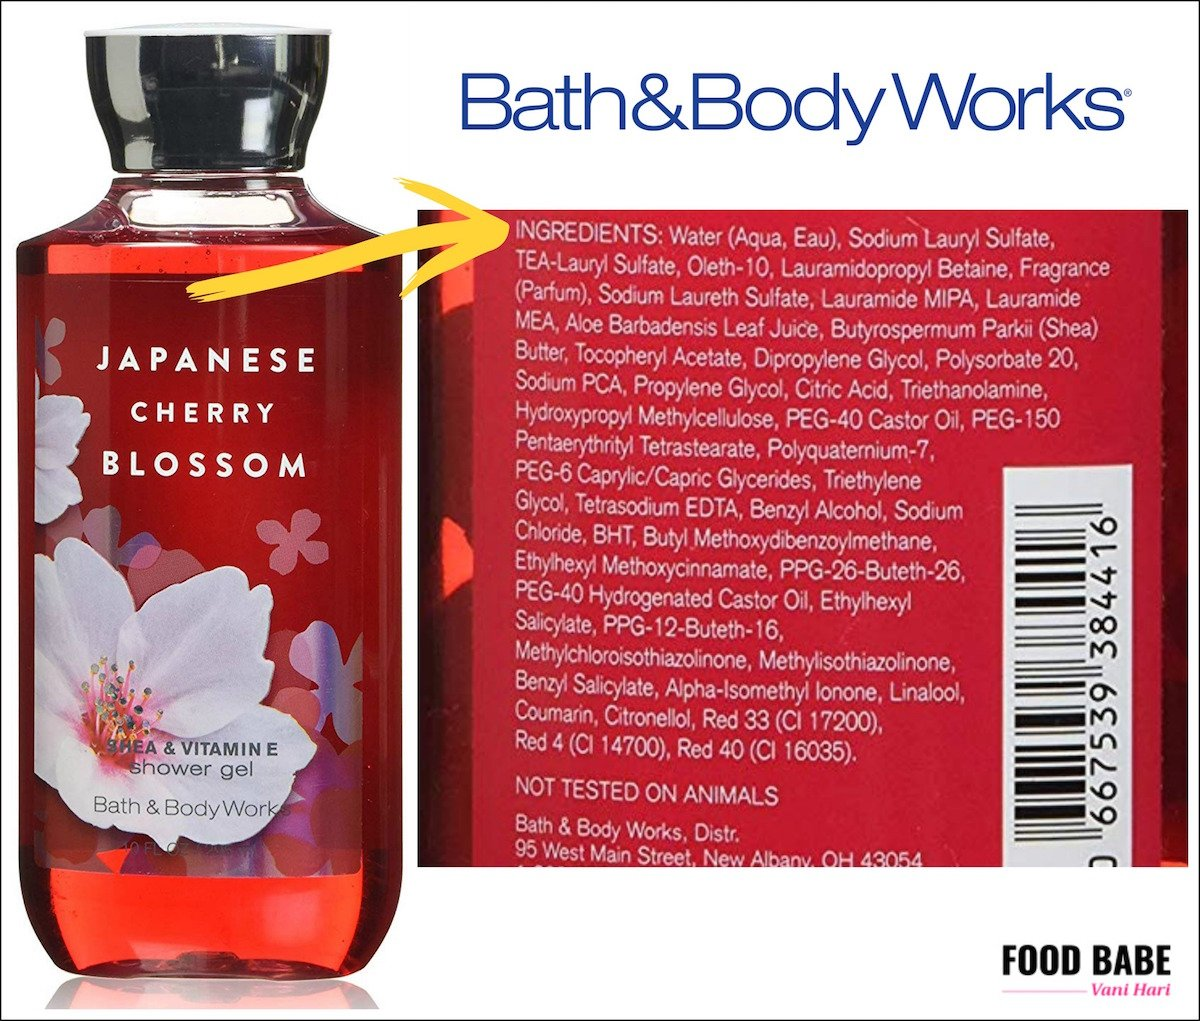 bath and body works ingredients